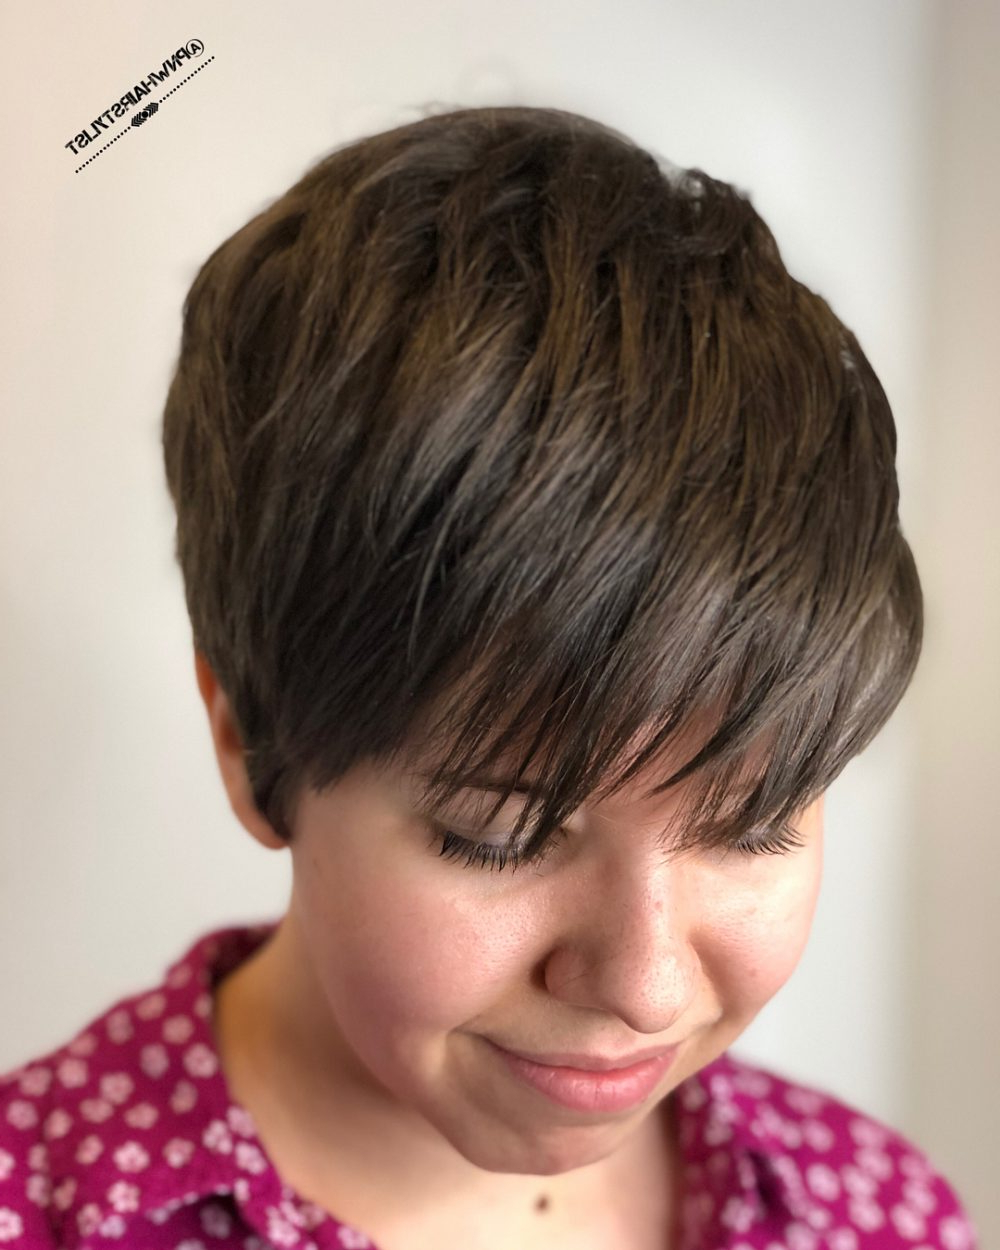 66 Flattering Short Hairstyles For Thick Hair (2019 Pics) Regarding Neat Pixie Haircuts For Gamine Girls (View 15 of 20)